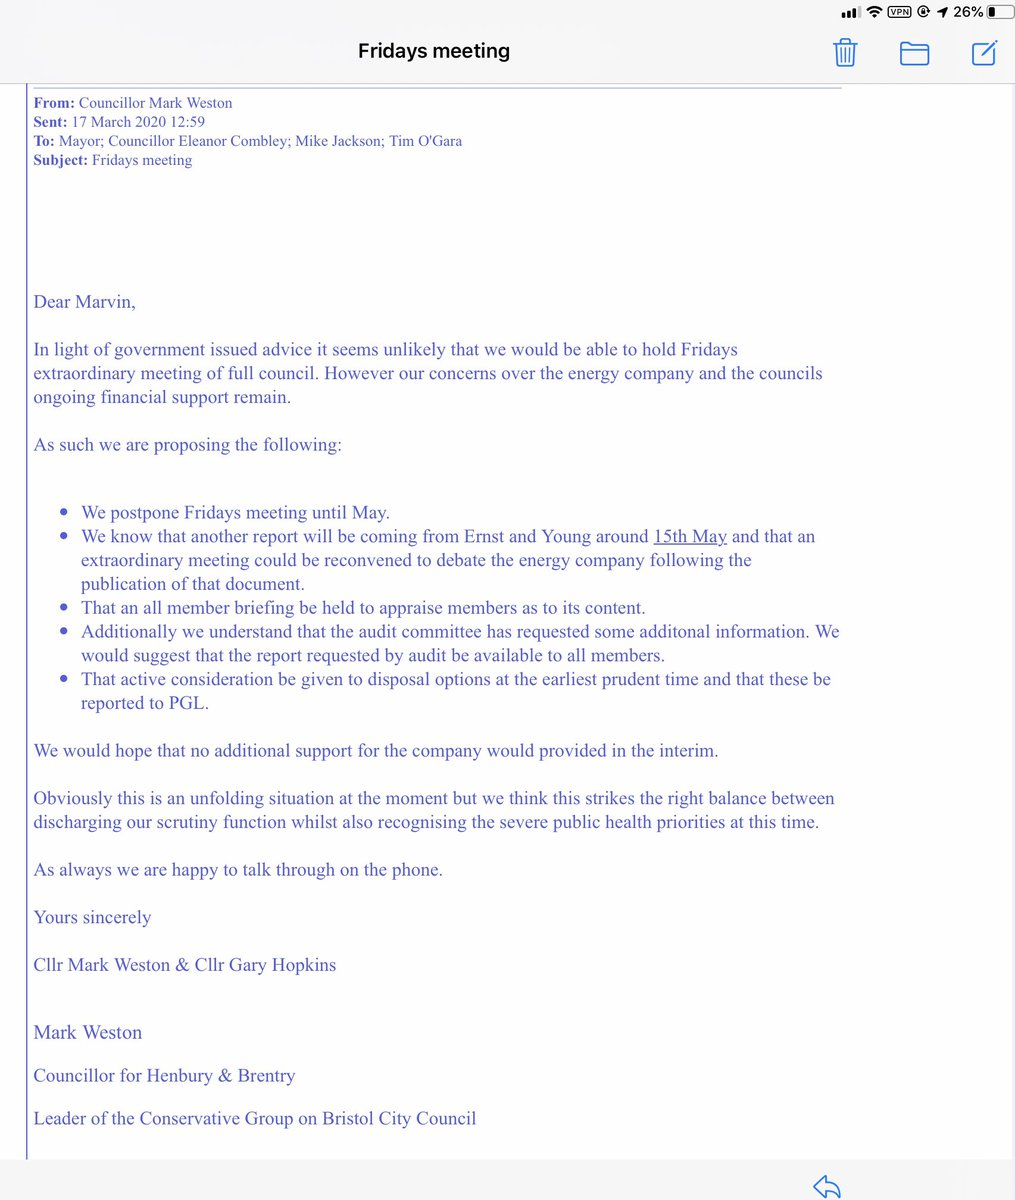 @GravyTrainBrit @bristol_citizen @MarvinJRees @BristolEnergy @SageAndOnion Here is the email (I checked that Mark was OK to post this). You can't decide yourself what you think it says and what was agreed to: